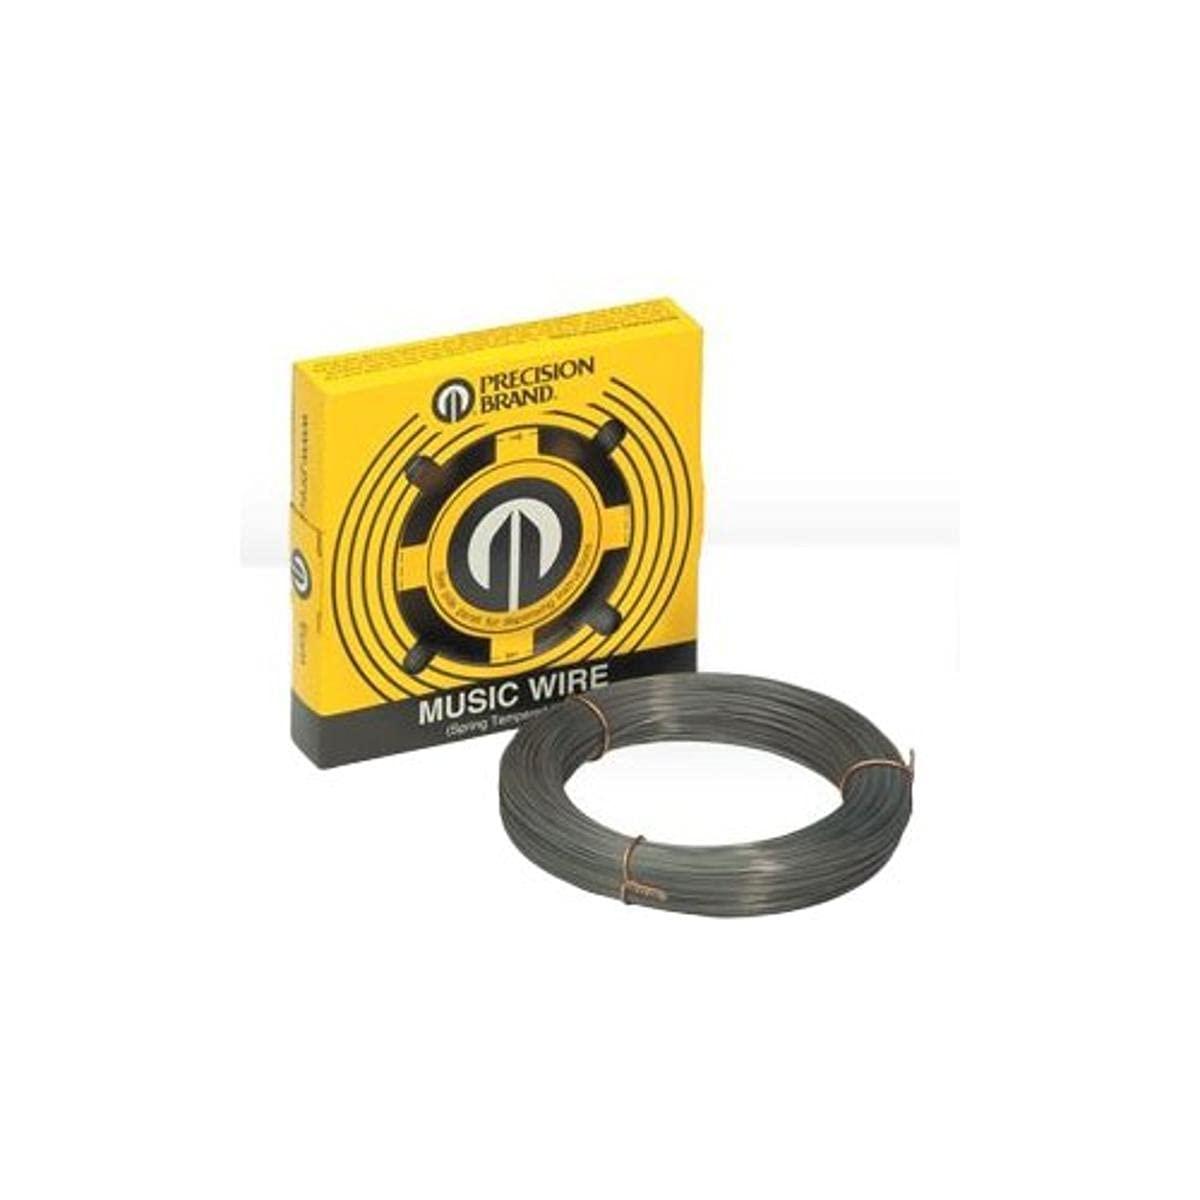 Precision Brand 039-21010 Music Wire 1 lb Max 72% OFF 0.010″ New product! New type Diameter